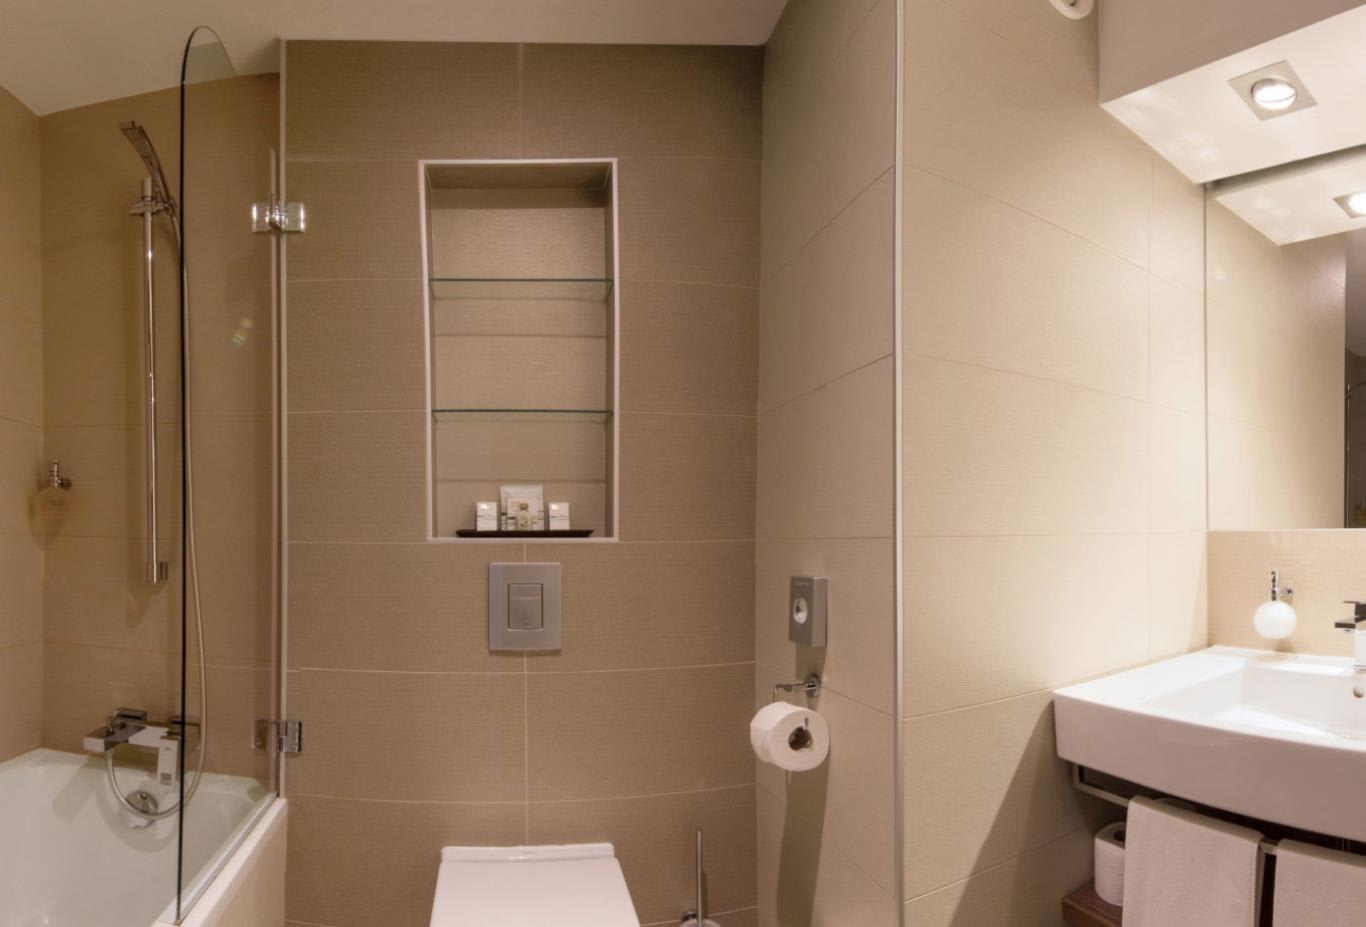 4-Star-Room-bathroom